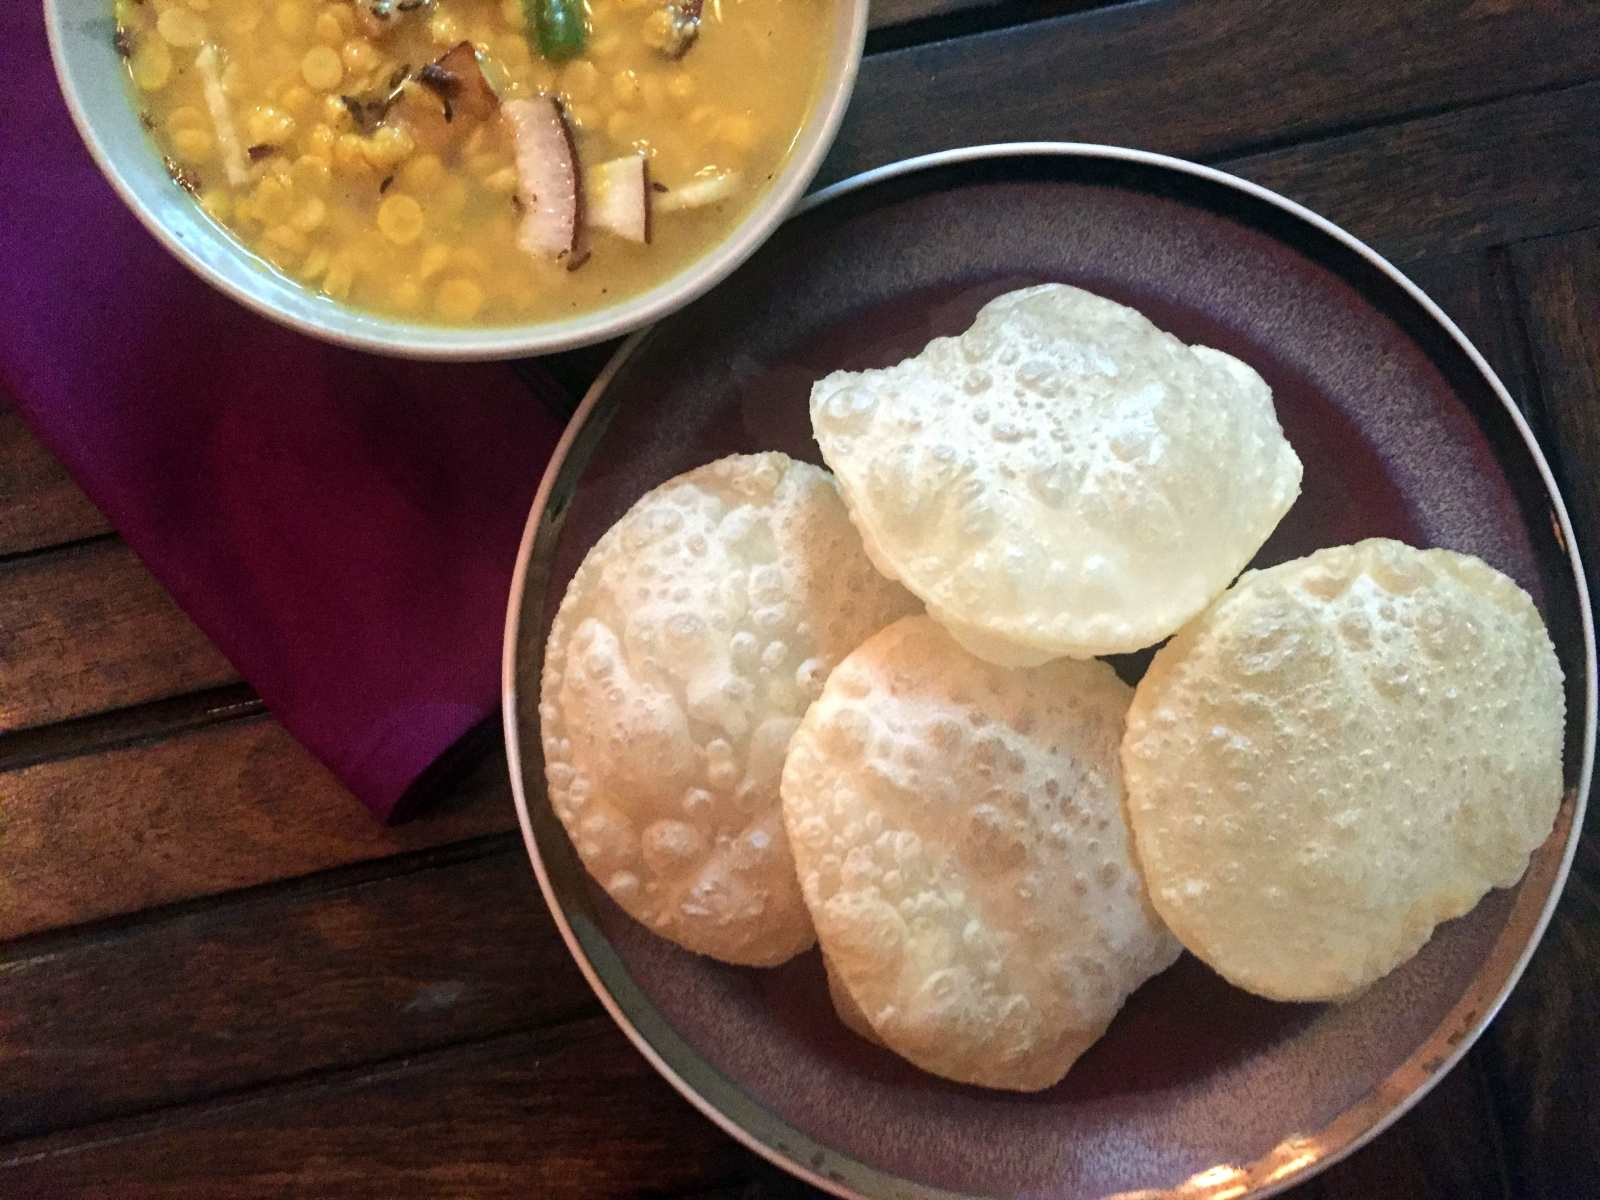 Everyday meal plate bengali style begun bhajacholar dalshukto luchi recipe forumfinder Gallery